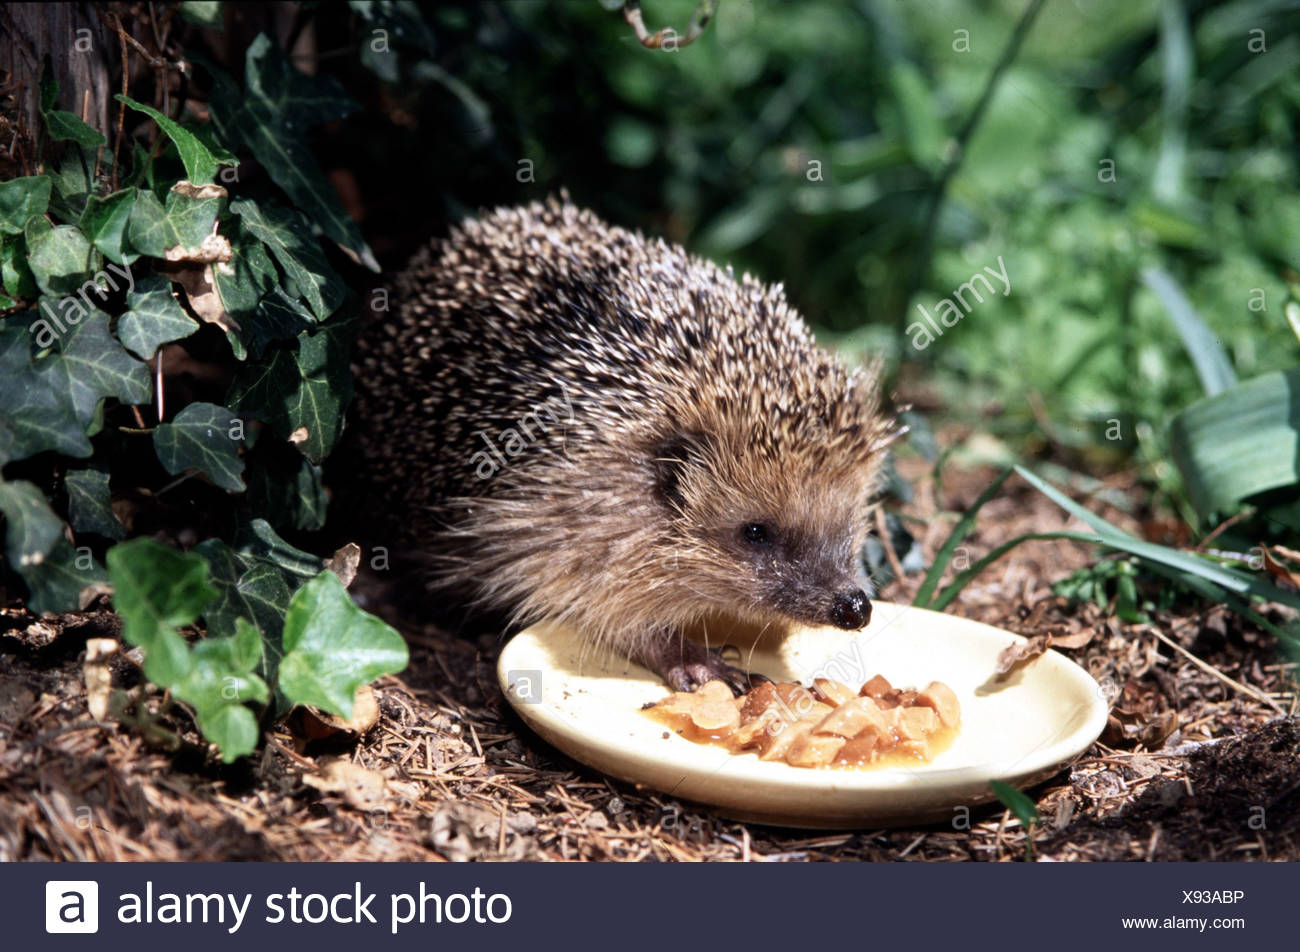 zoology / animals, mammal / mammalian, hedgehog, (Erinaceus europaeus), young hedgehog eating from plate, distribution: Europe, - Stock Image